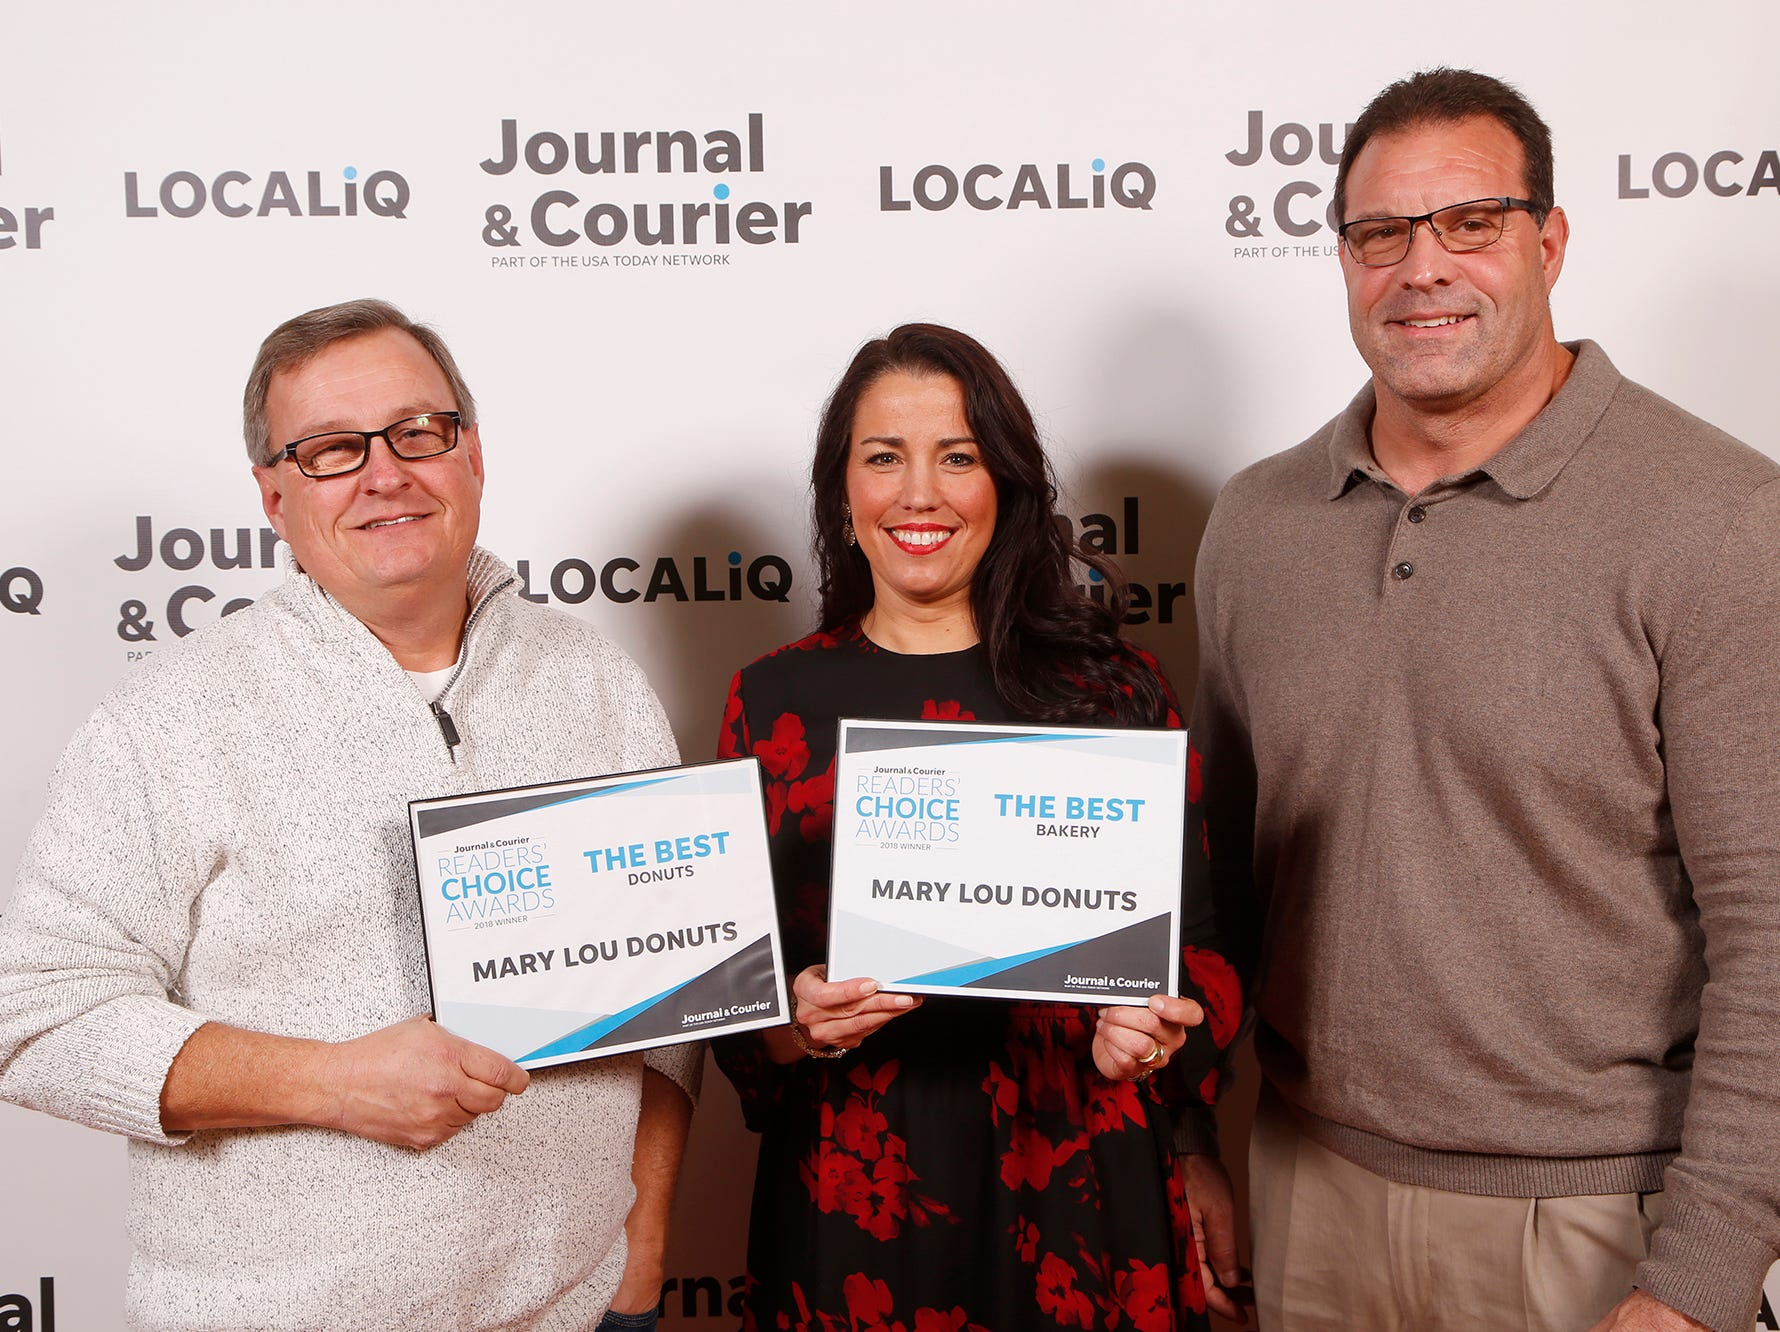 Mary Lou Donuts, Journal & Courier Readers' Choice Awards winner for the best donuts and the best bakery.